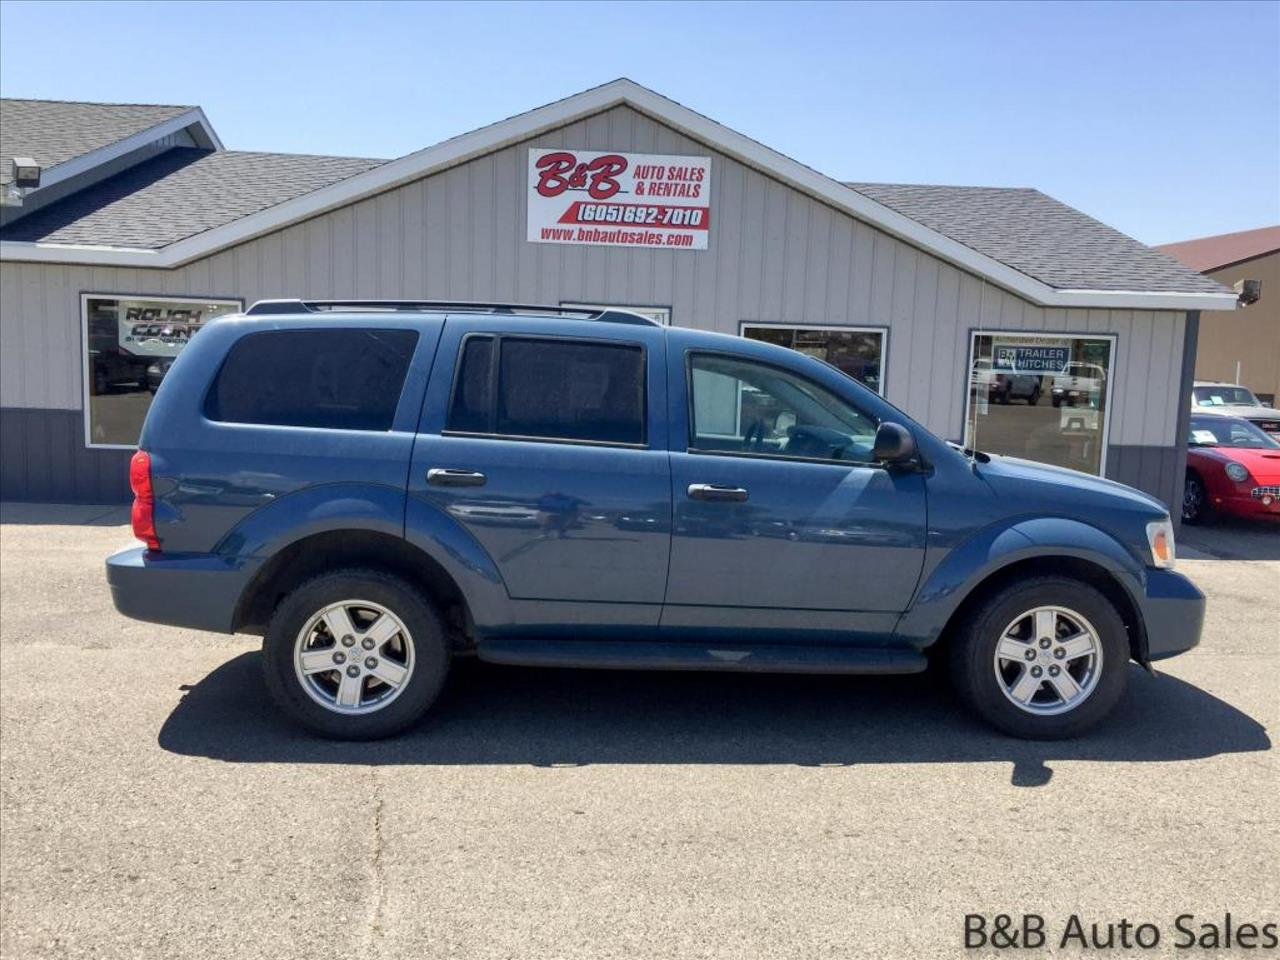 2009 Dodge Durango 4x4 SE 4dr SUV - Brookings SD